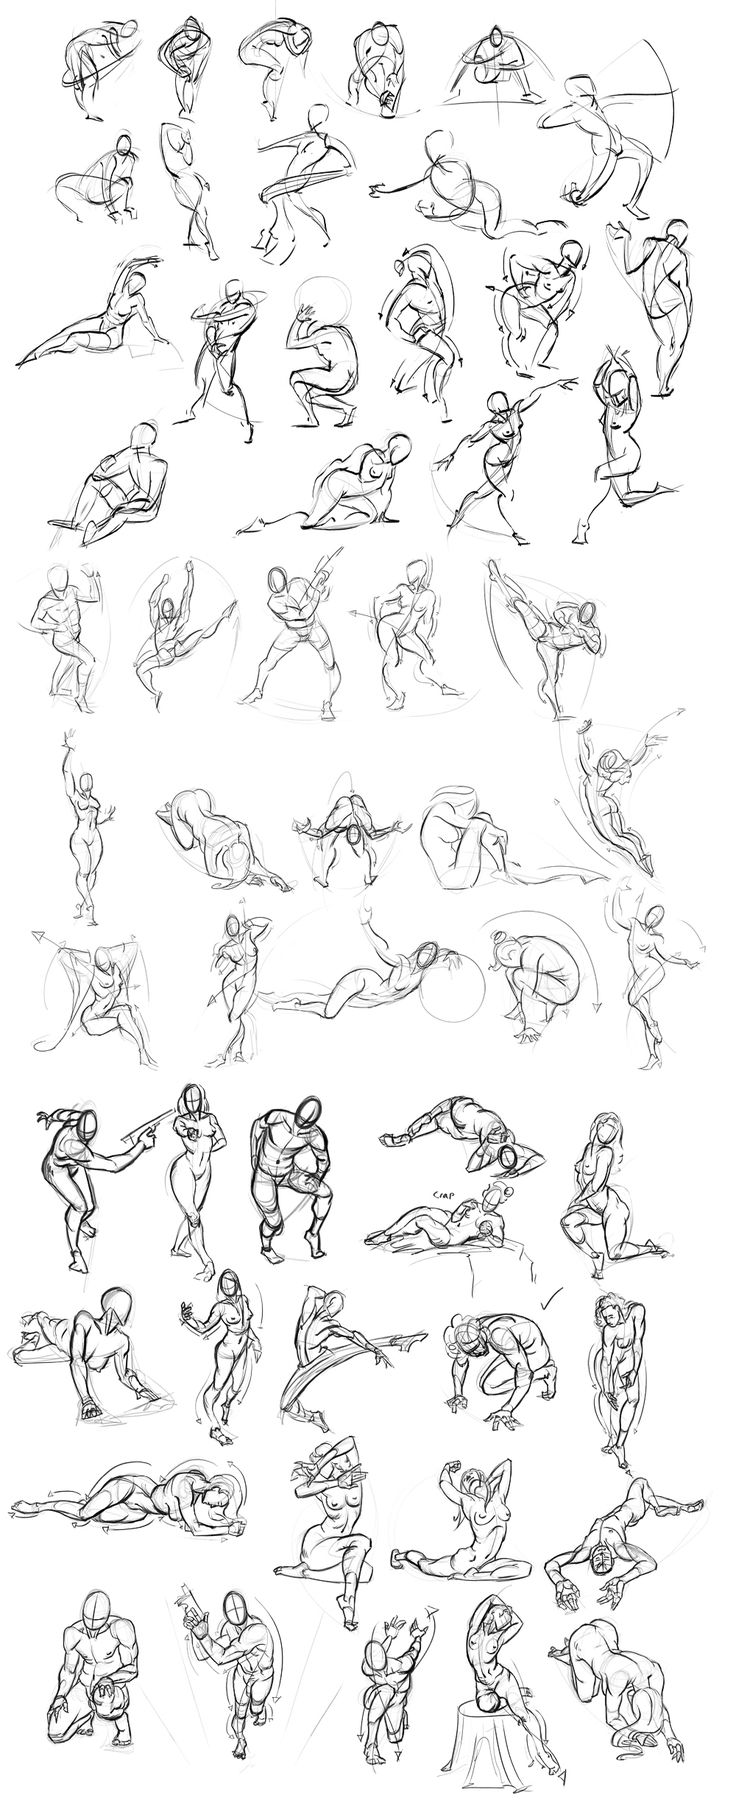 Figure Drawing 013 by Andantonius on deviantART via PinCG.com